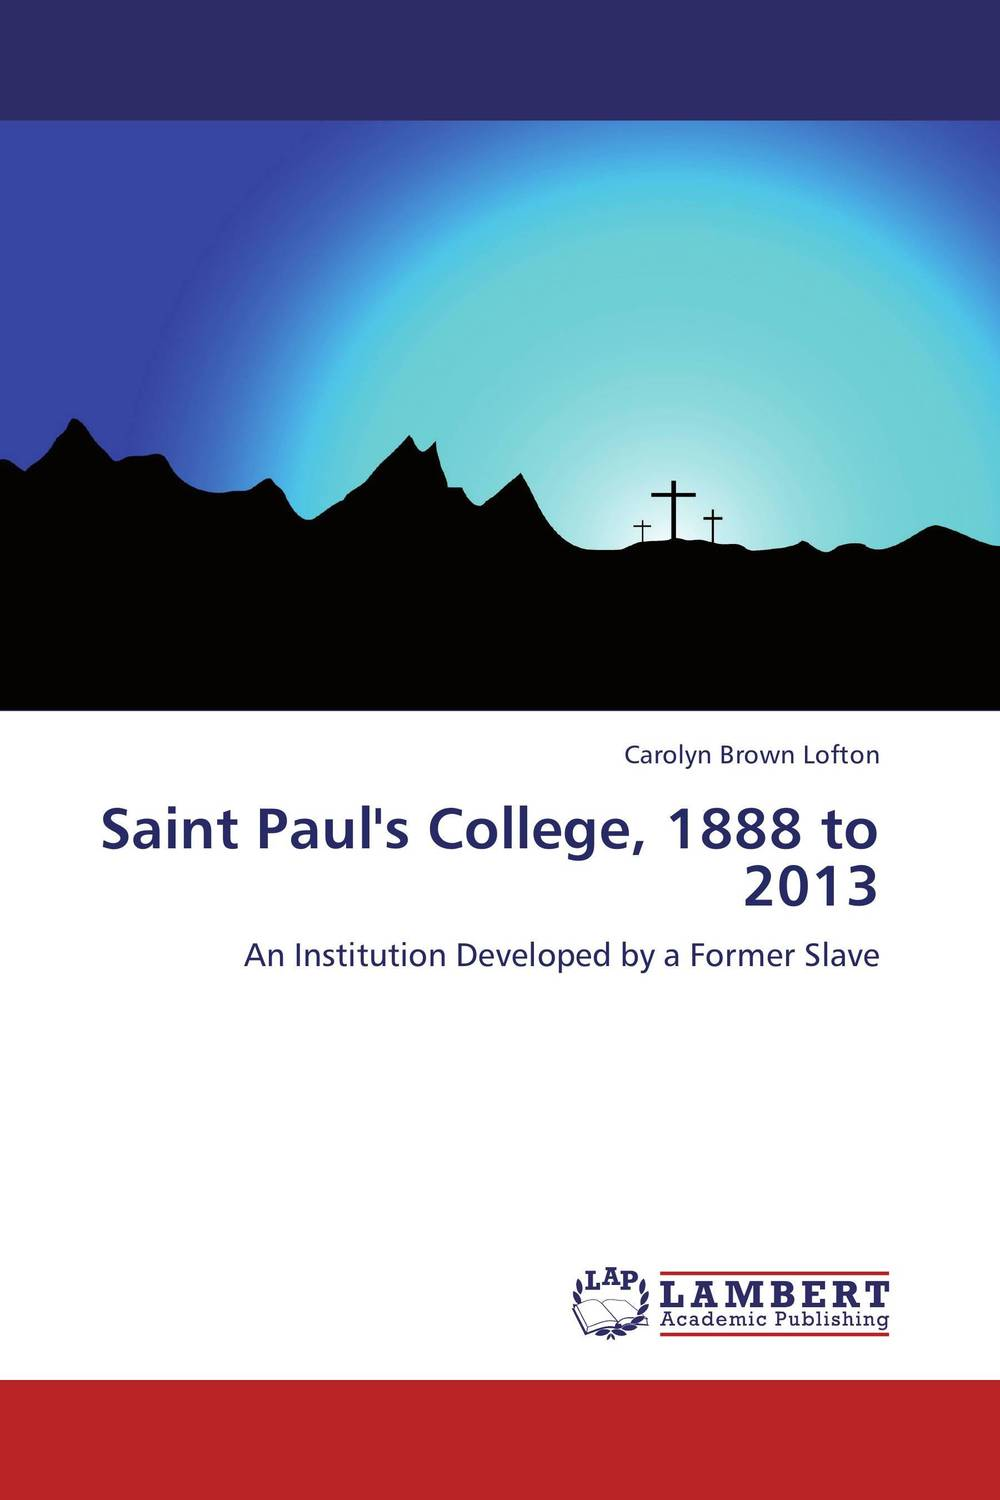 Saint Paul's College, 1888 to 2013